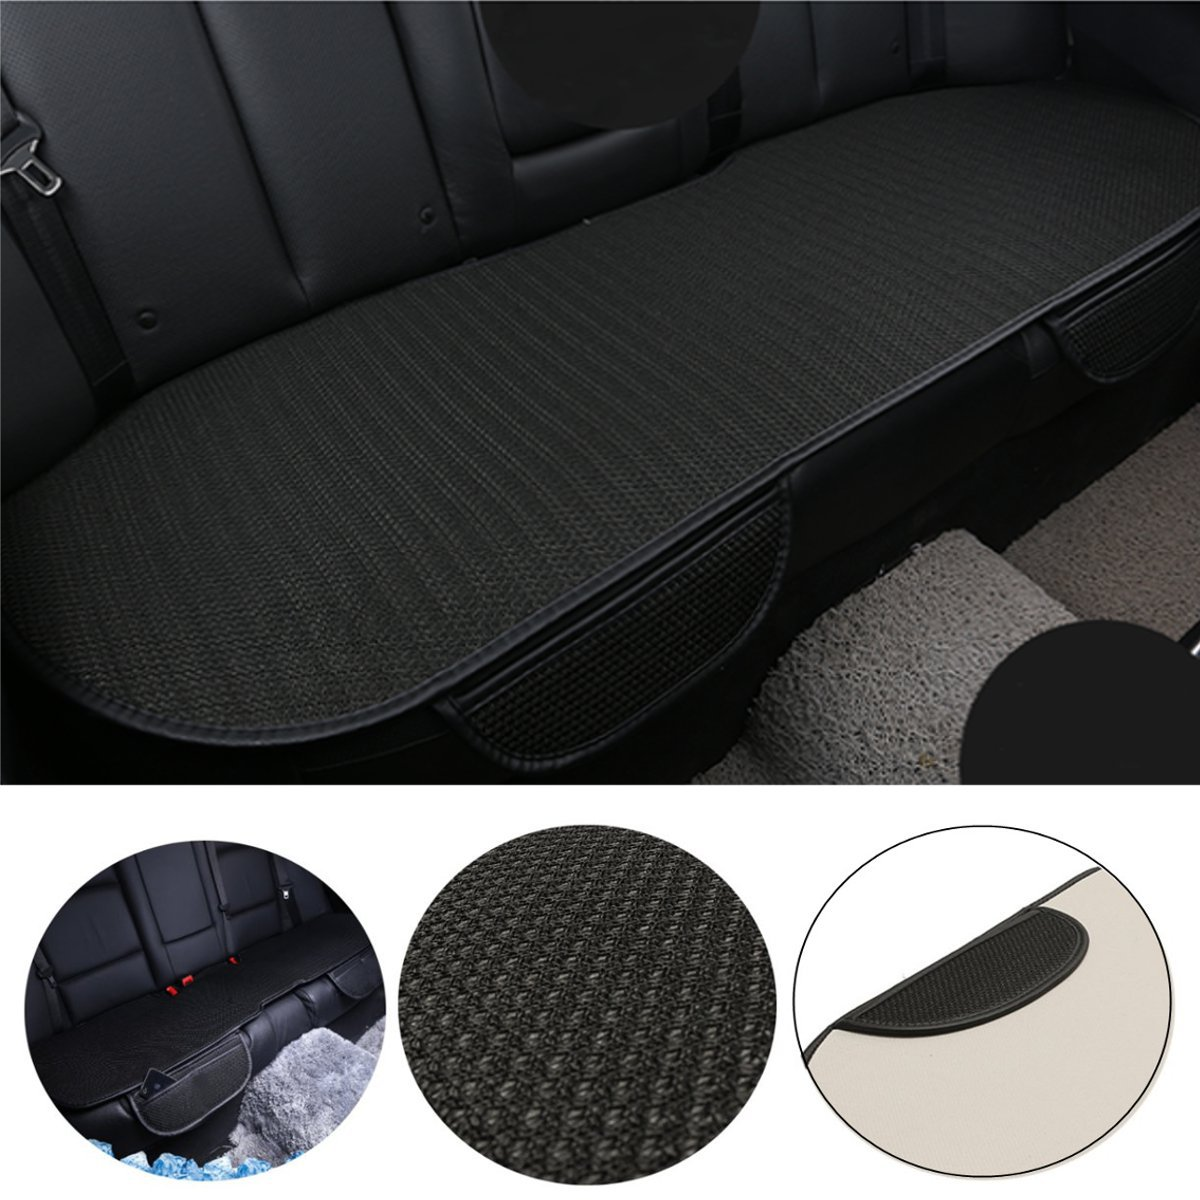 universal rear back car seat cushion protector cover mat pad ice silk non slip ebay. Black Bedroom Furniture Sets. Home Design Ideas